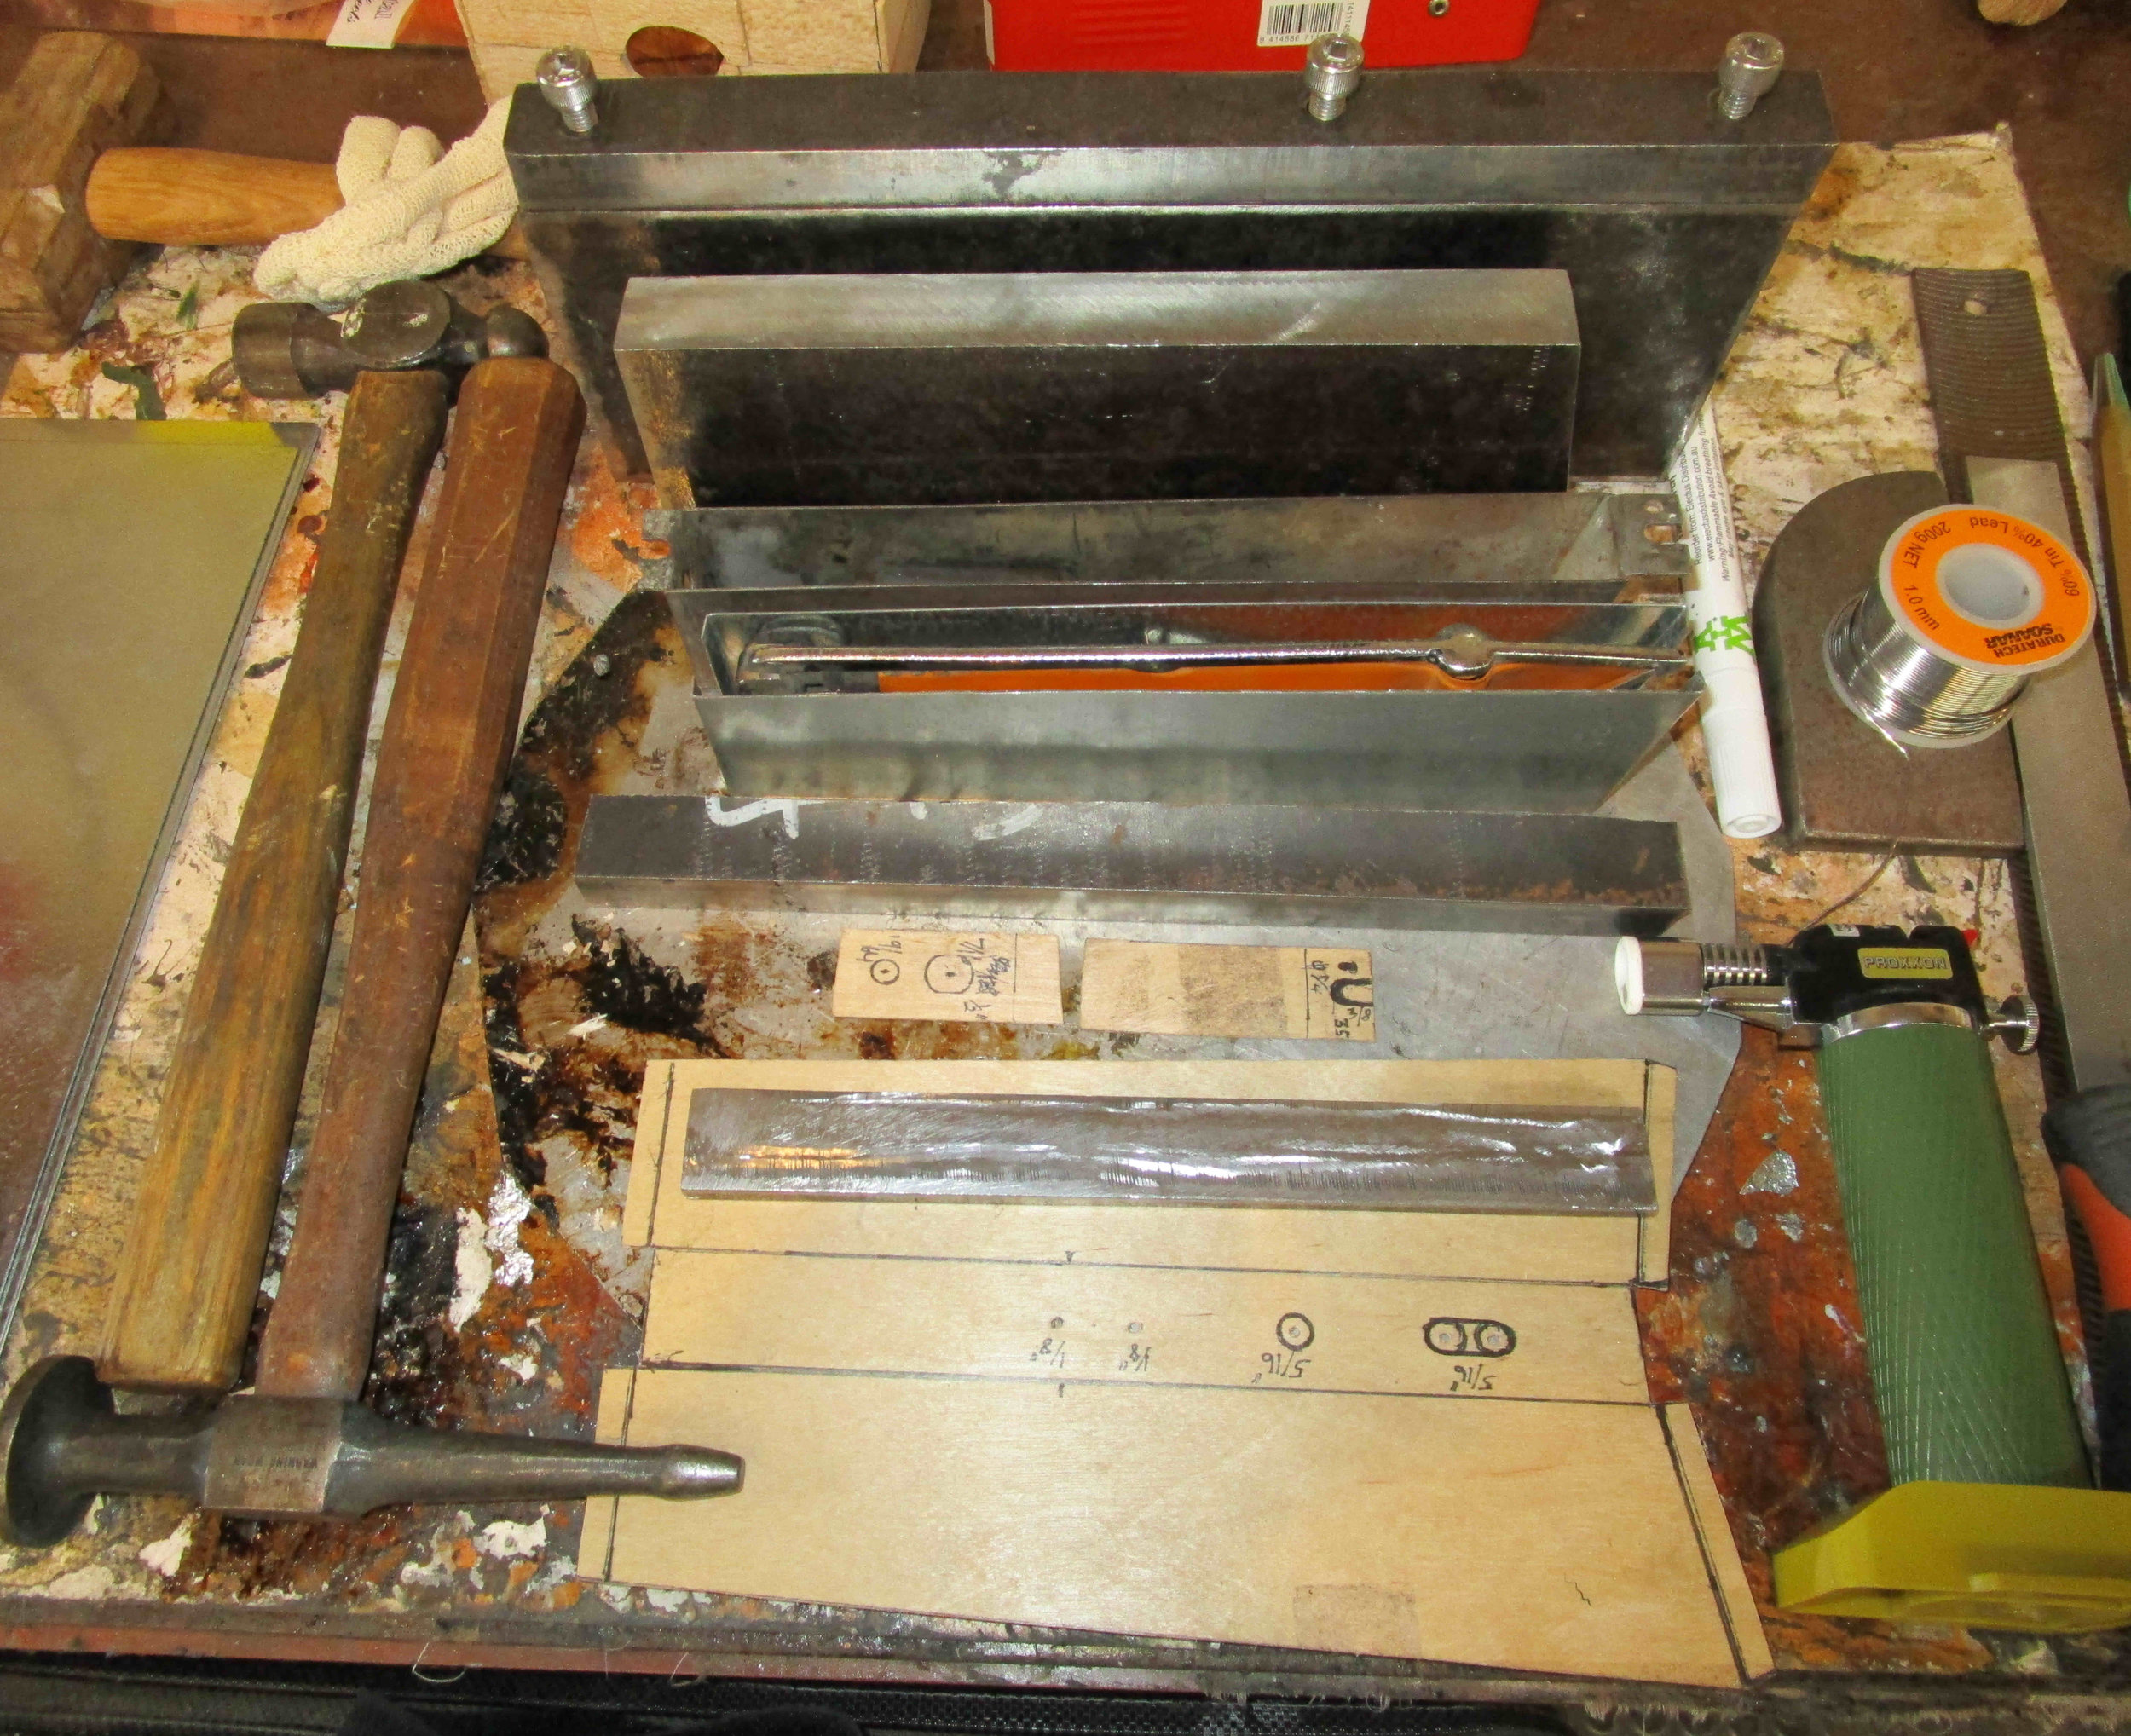 Folding blocks for tin plate, patterns, and panel-making tools.